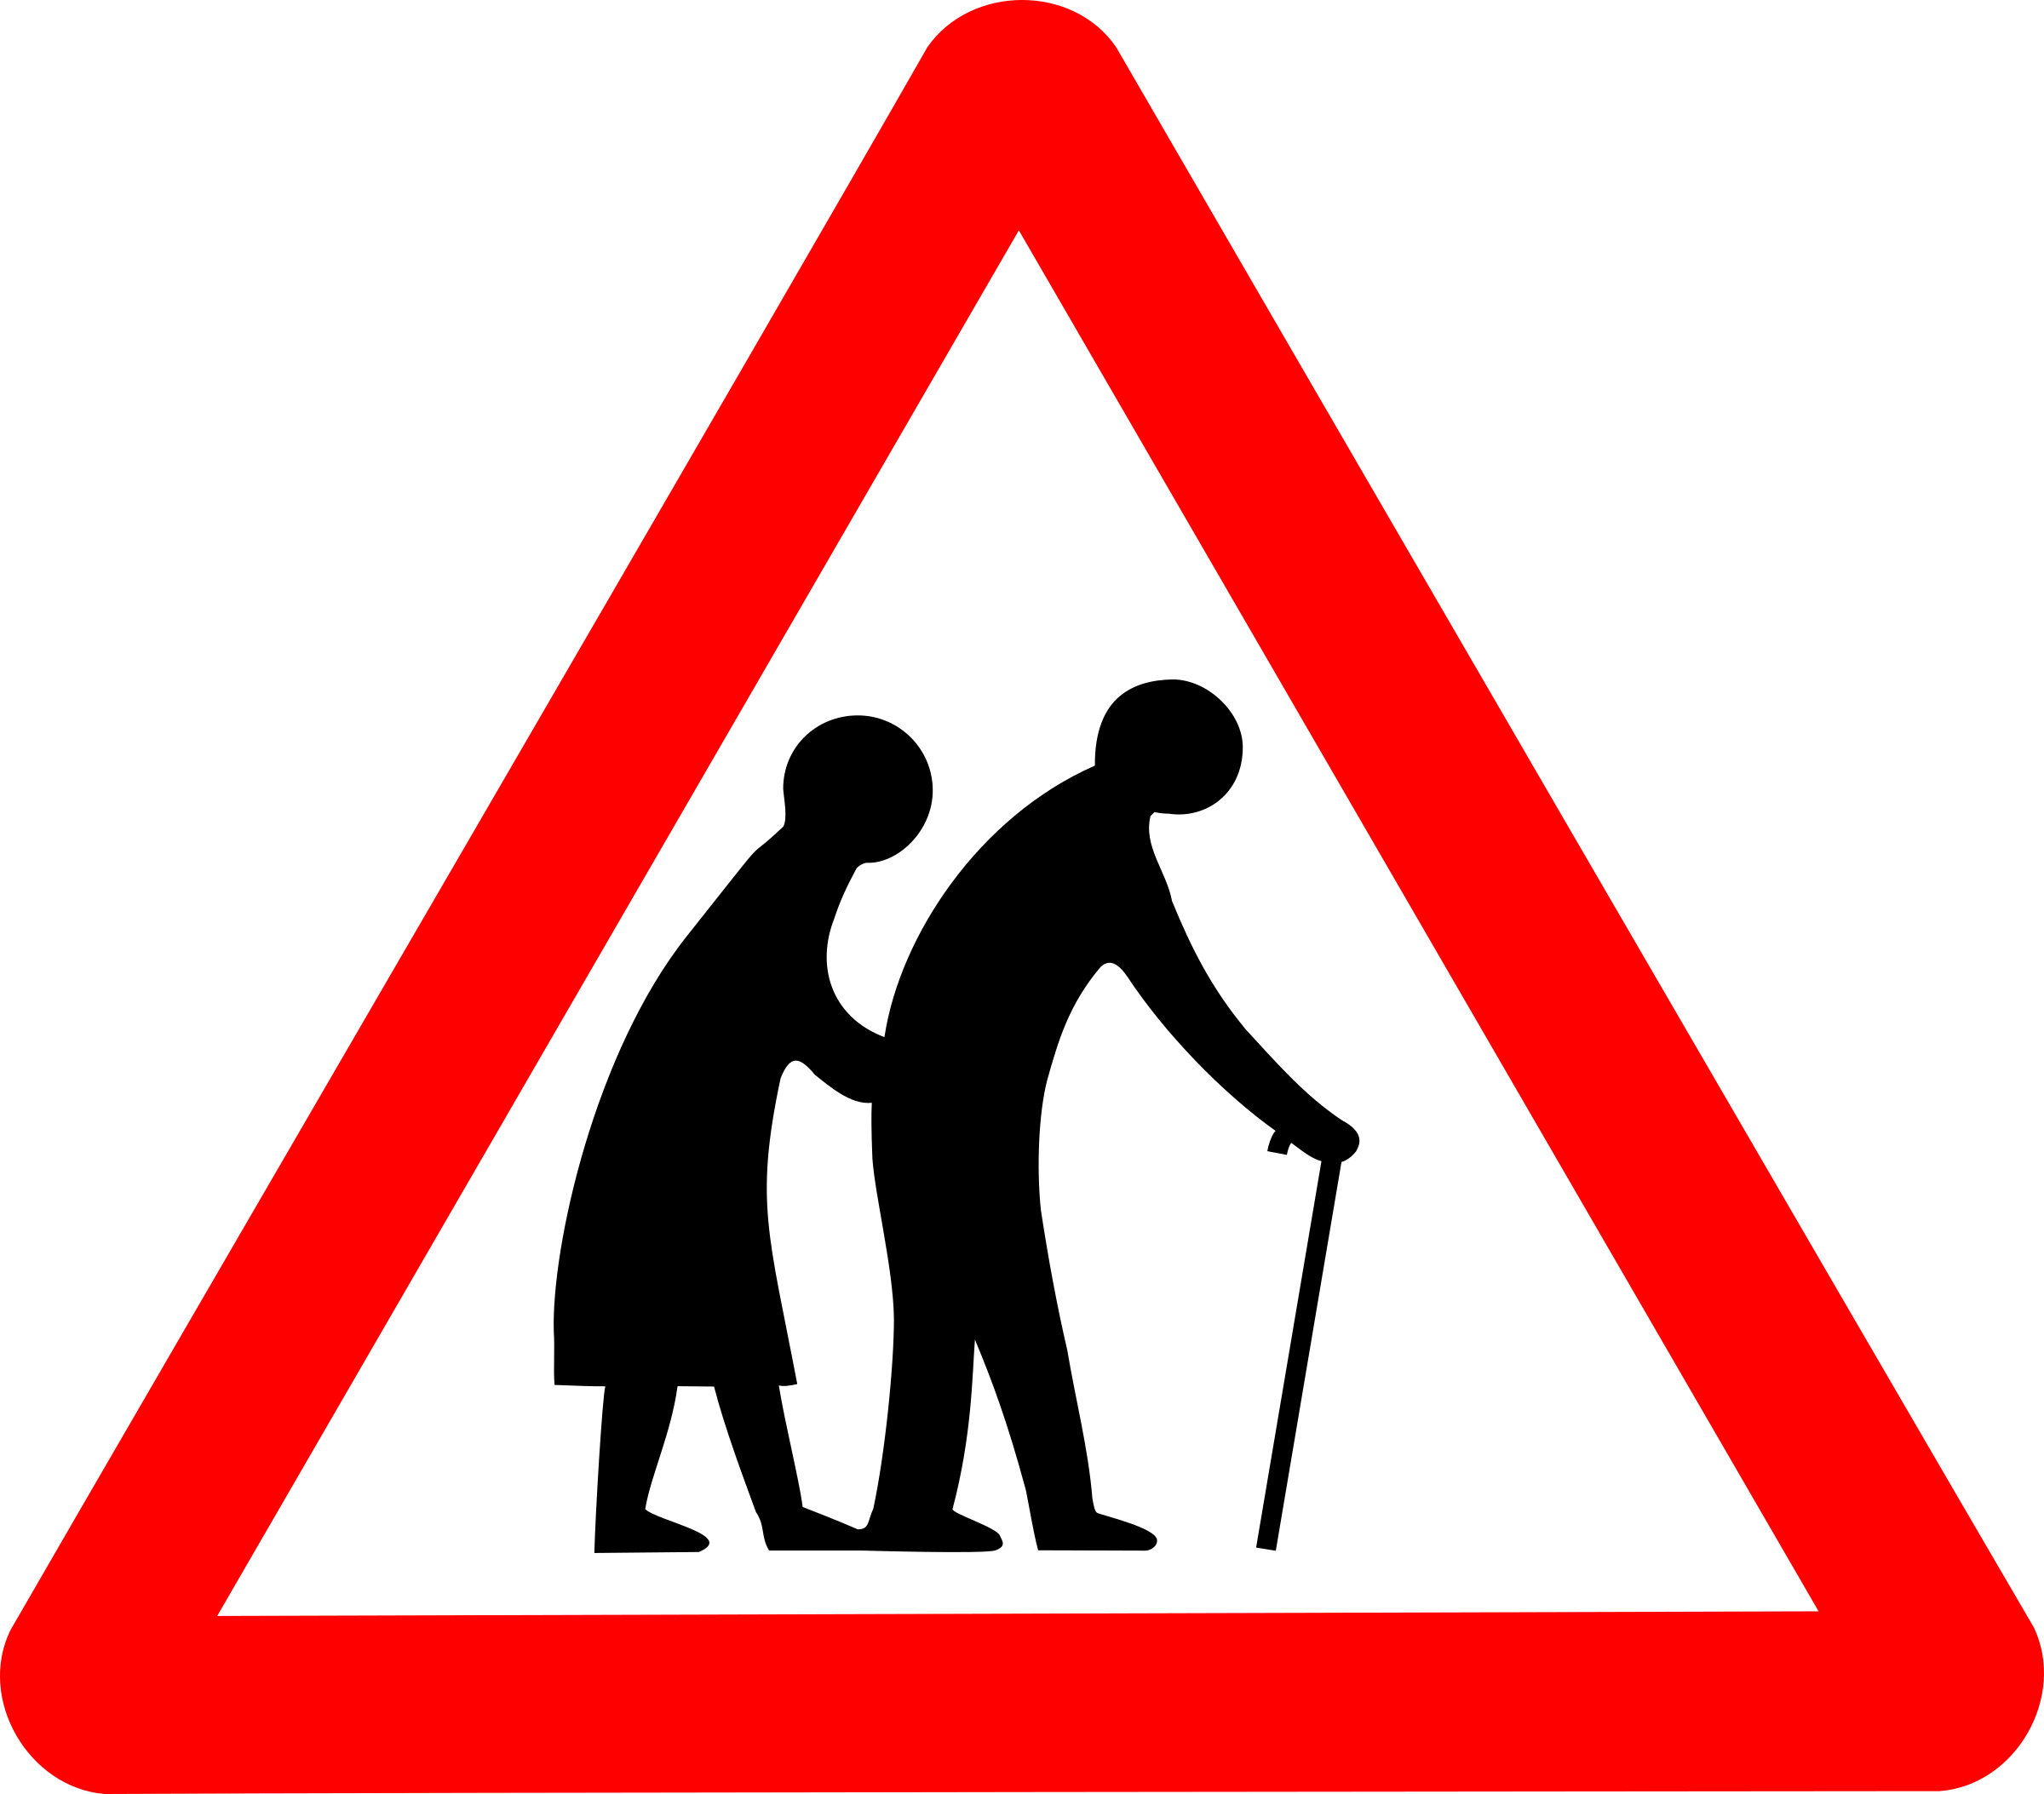 Zootopia traffic sign png. Clipart roadsign old folks